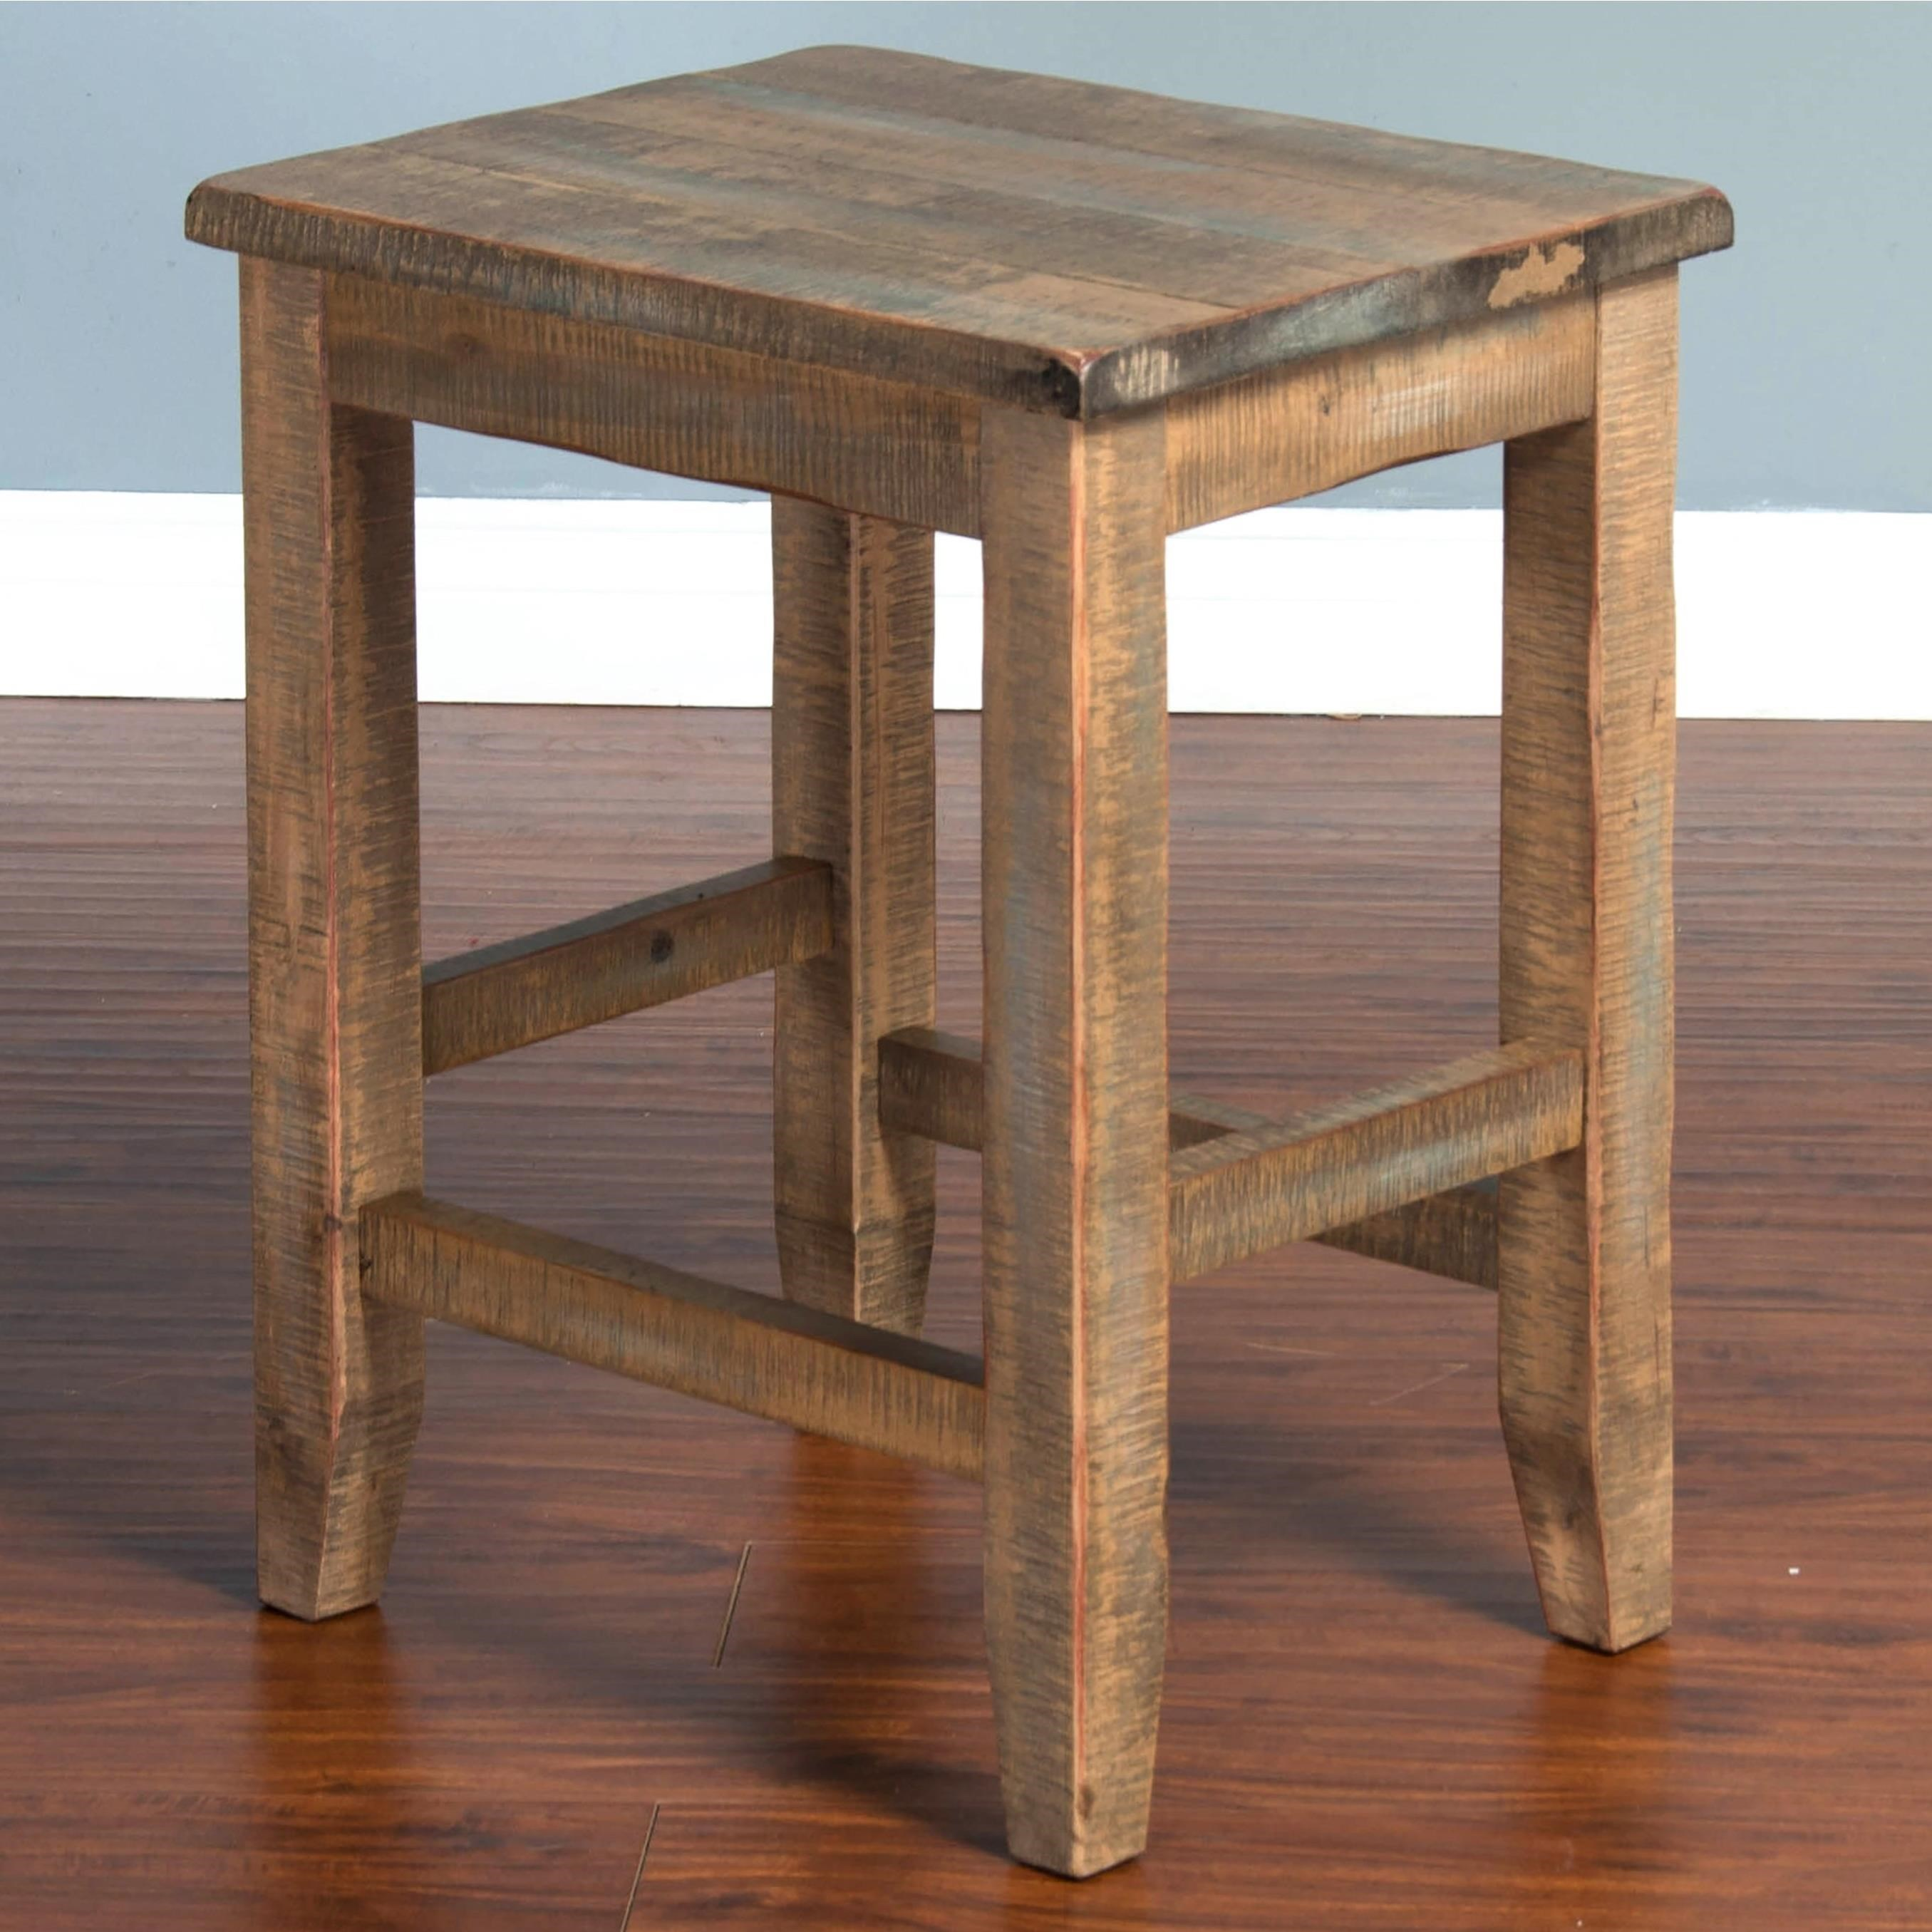 Terrific Sunny Designs Puebla Rustic Backless Stool W Wood Seat Ocoug Best Dining Table And Chair Ideas Images Ocougorg